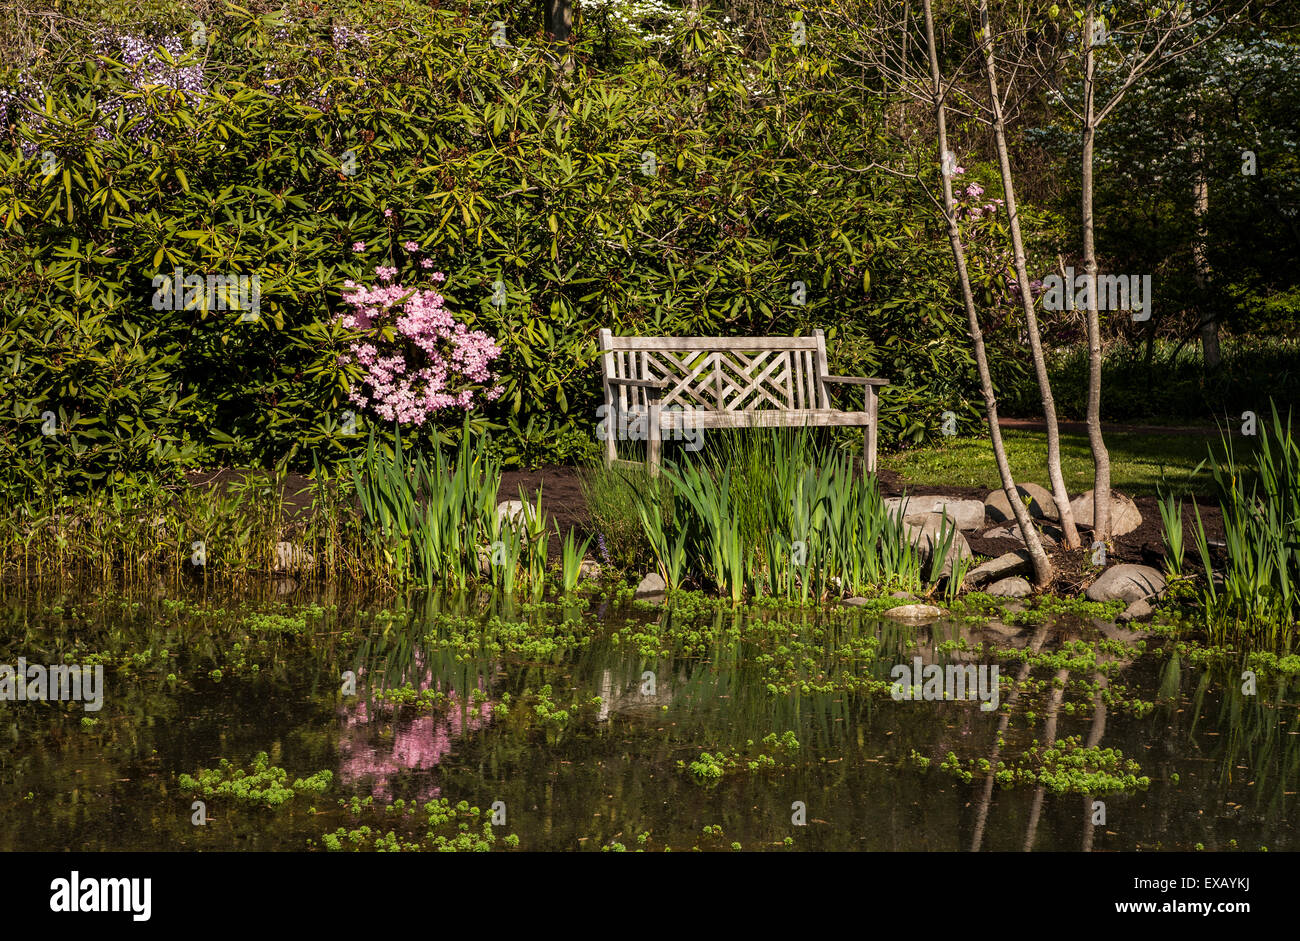 stock photo wooden garden bench or love seat and a pond reflection in a flower garden in mercer county new jersey usa